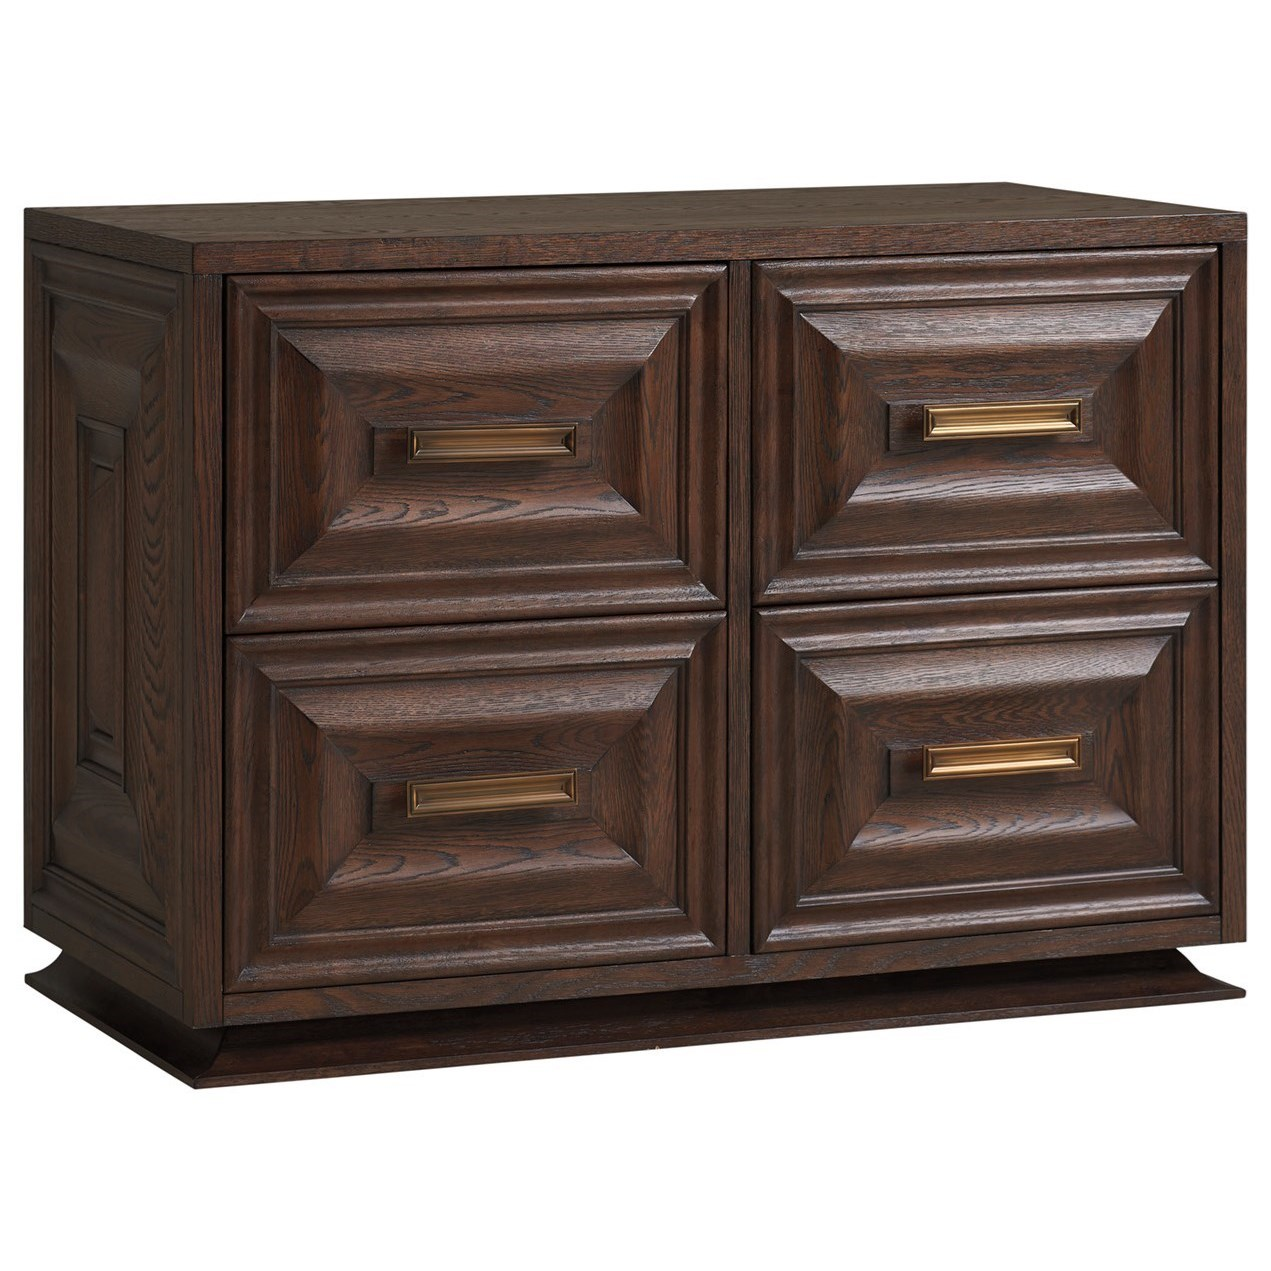 Barrymore File Chest by Sligh at Baer's Furniture